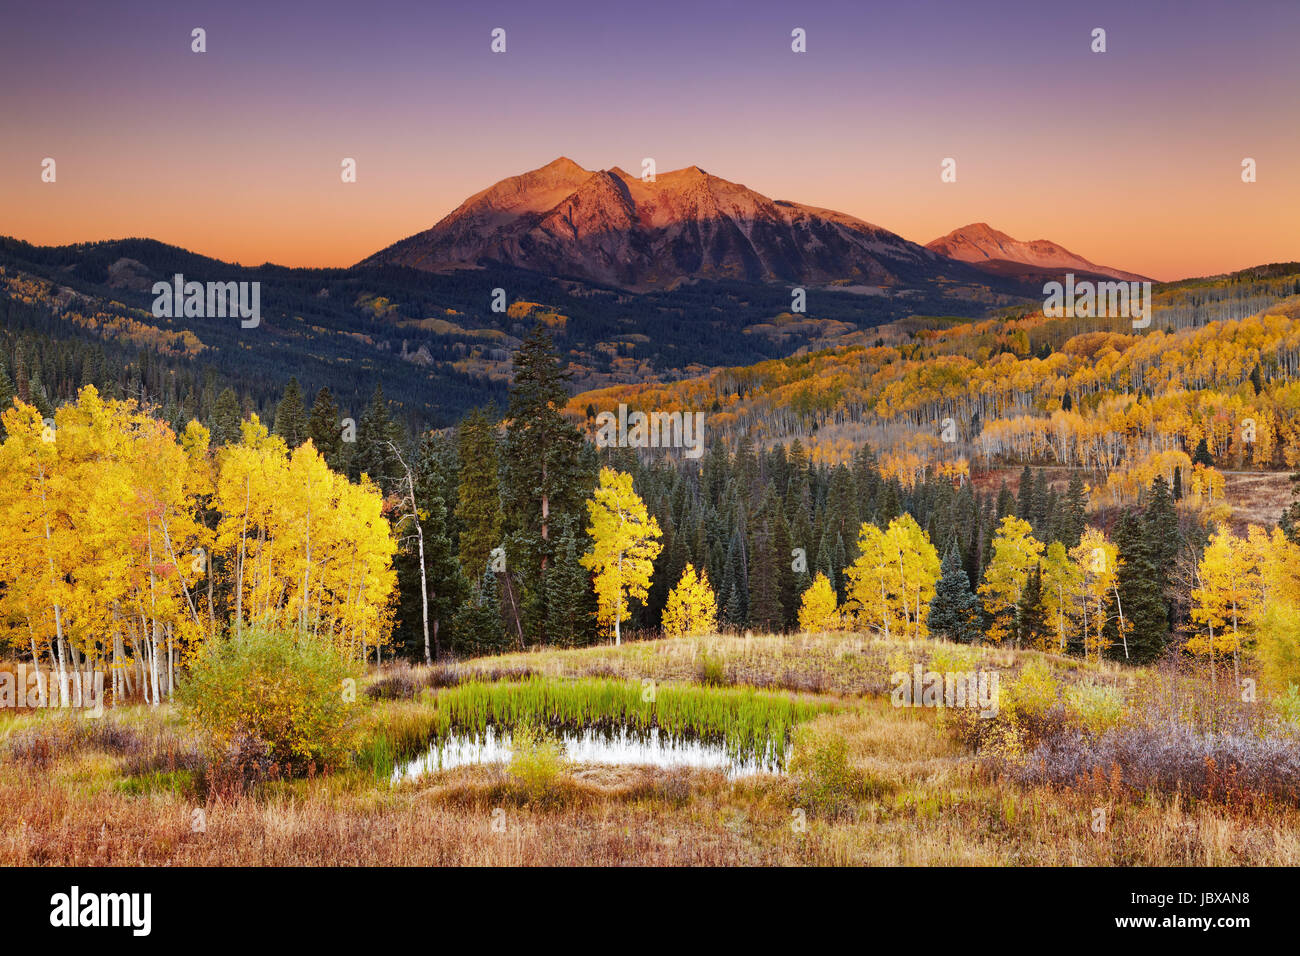 Osten Beckwith Berg bei Sonnenaufgang in der Nähe von Kebler Pass in West Elk Mountains, Colorado, USA Stockbild